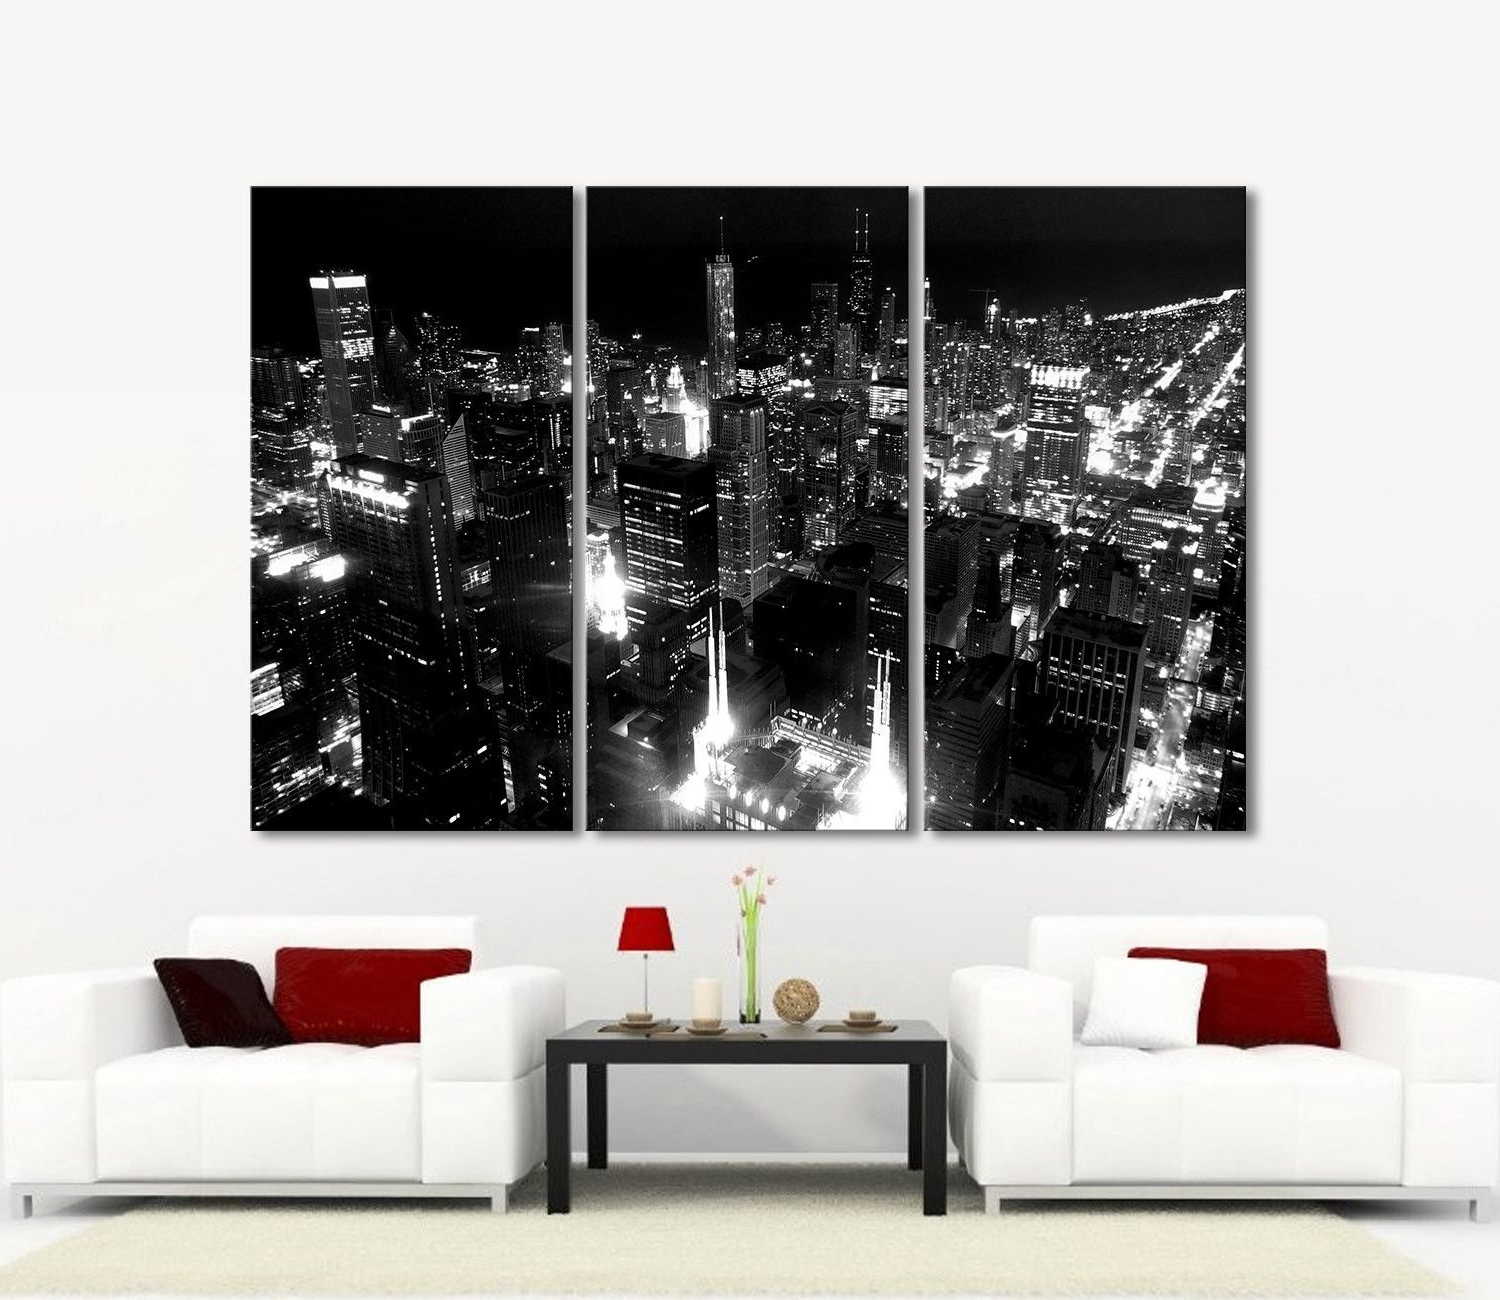 Most Popular 3 Piece Wall Art With Large Wall Art Canvas Print Chicago City Skyline At Night –  (View 12 of 15)